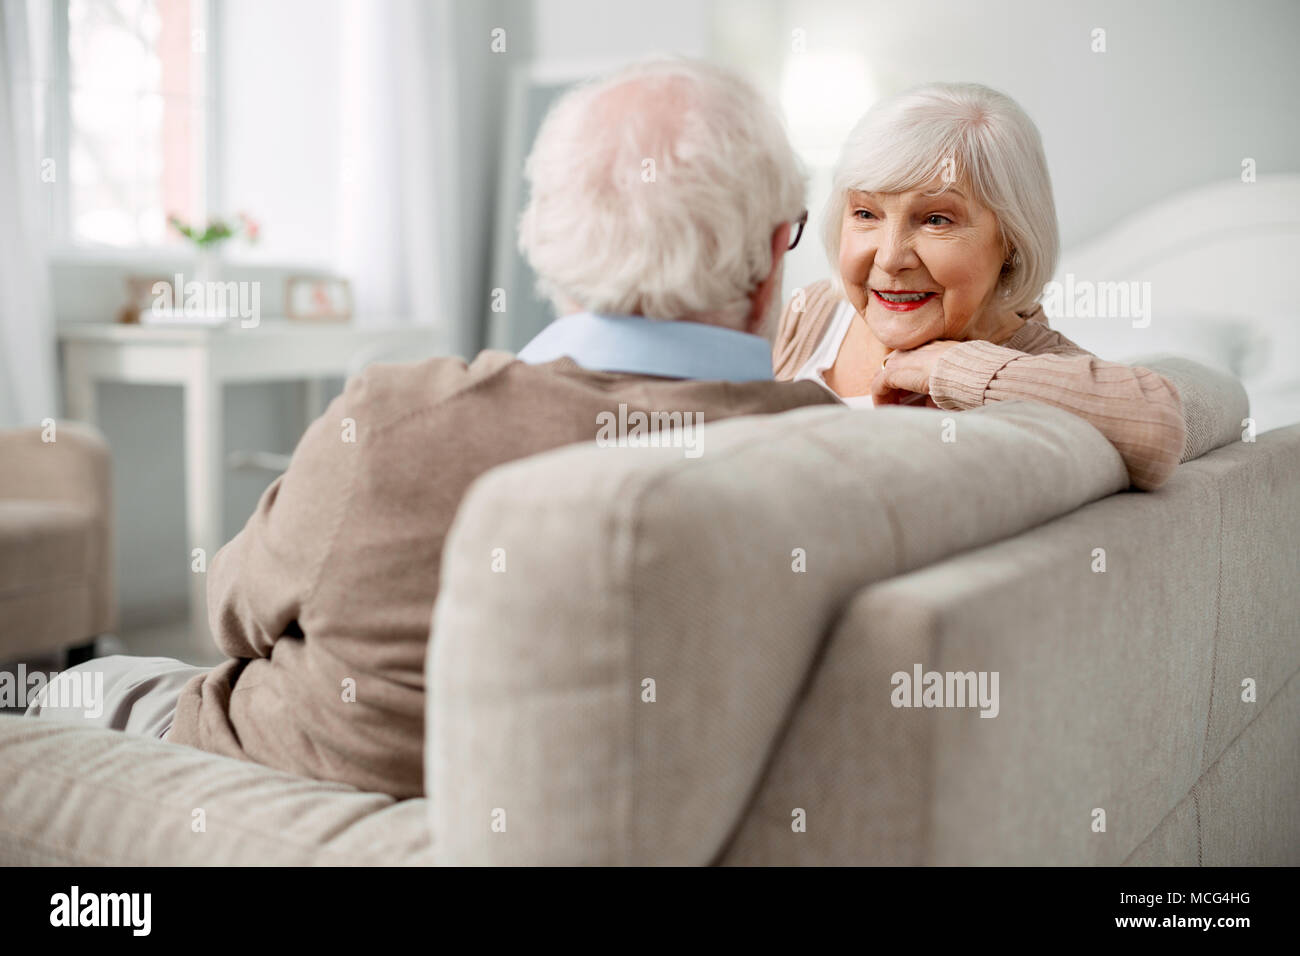 Senior woman looking at positive son mari face Photo Stock